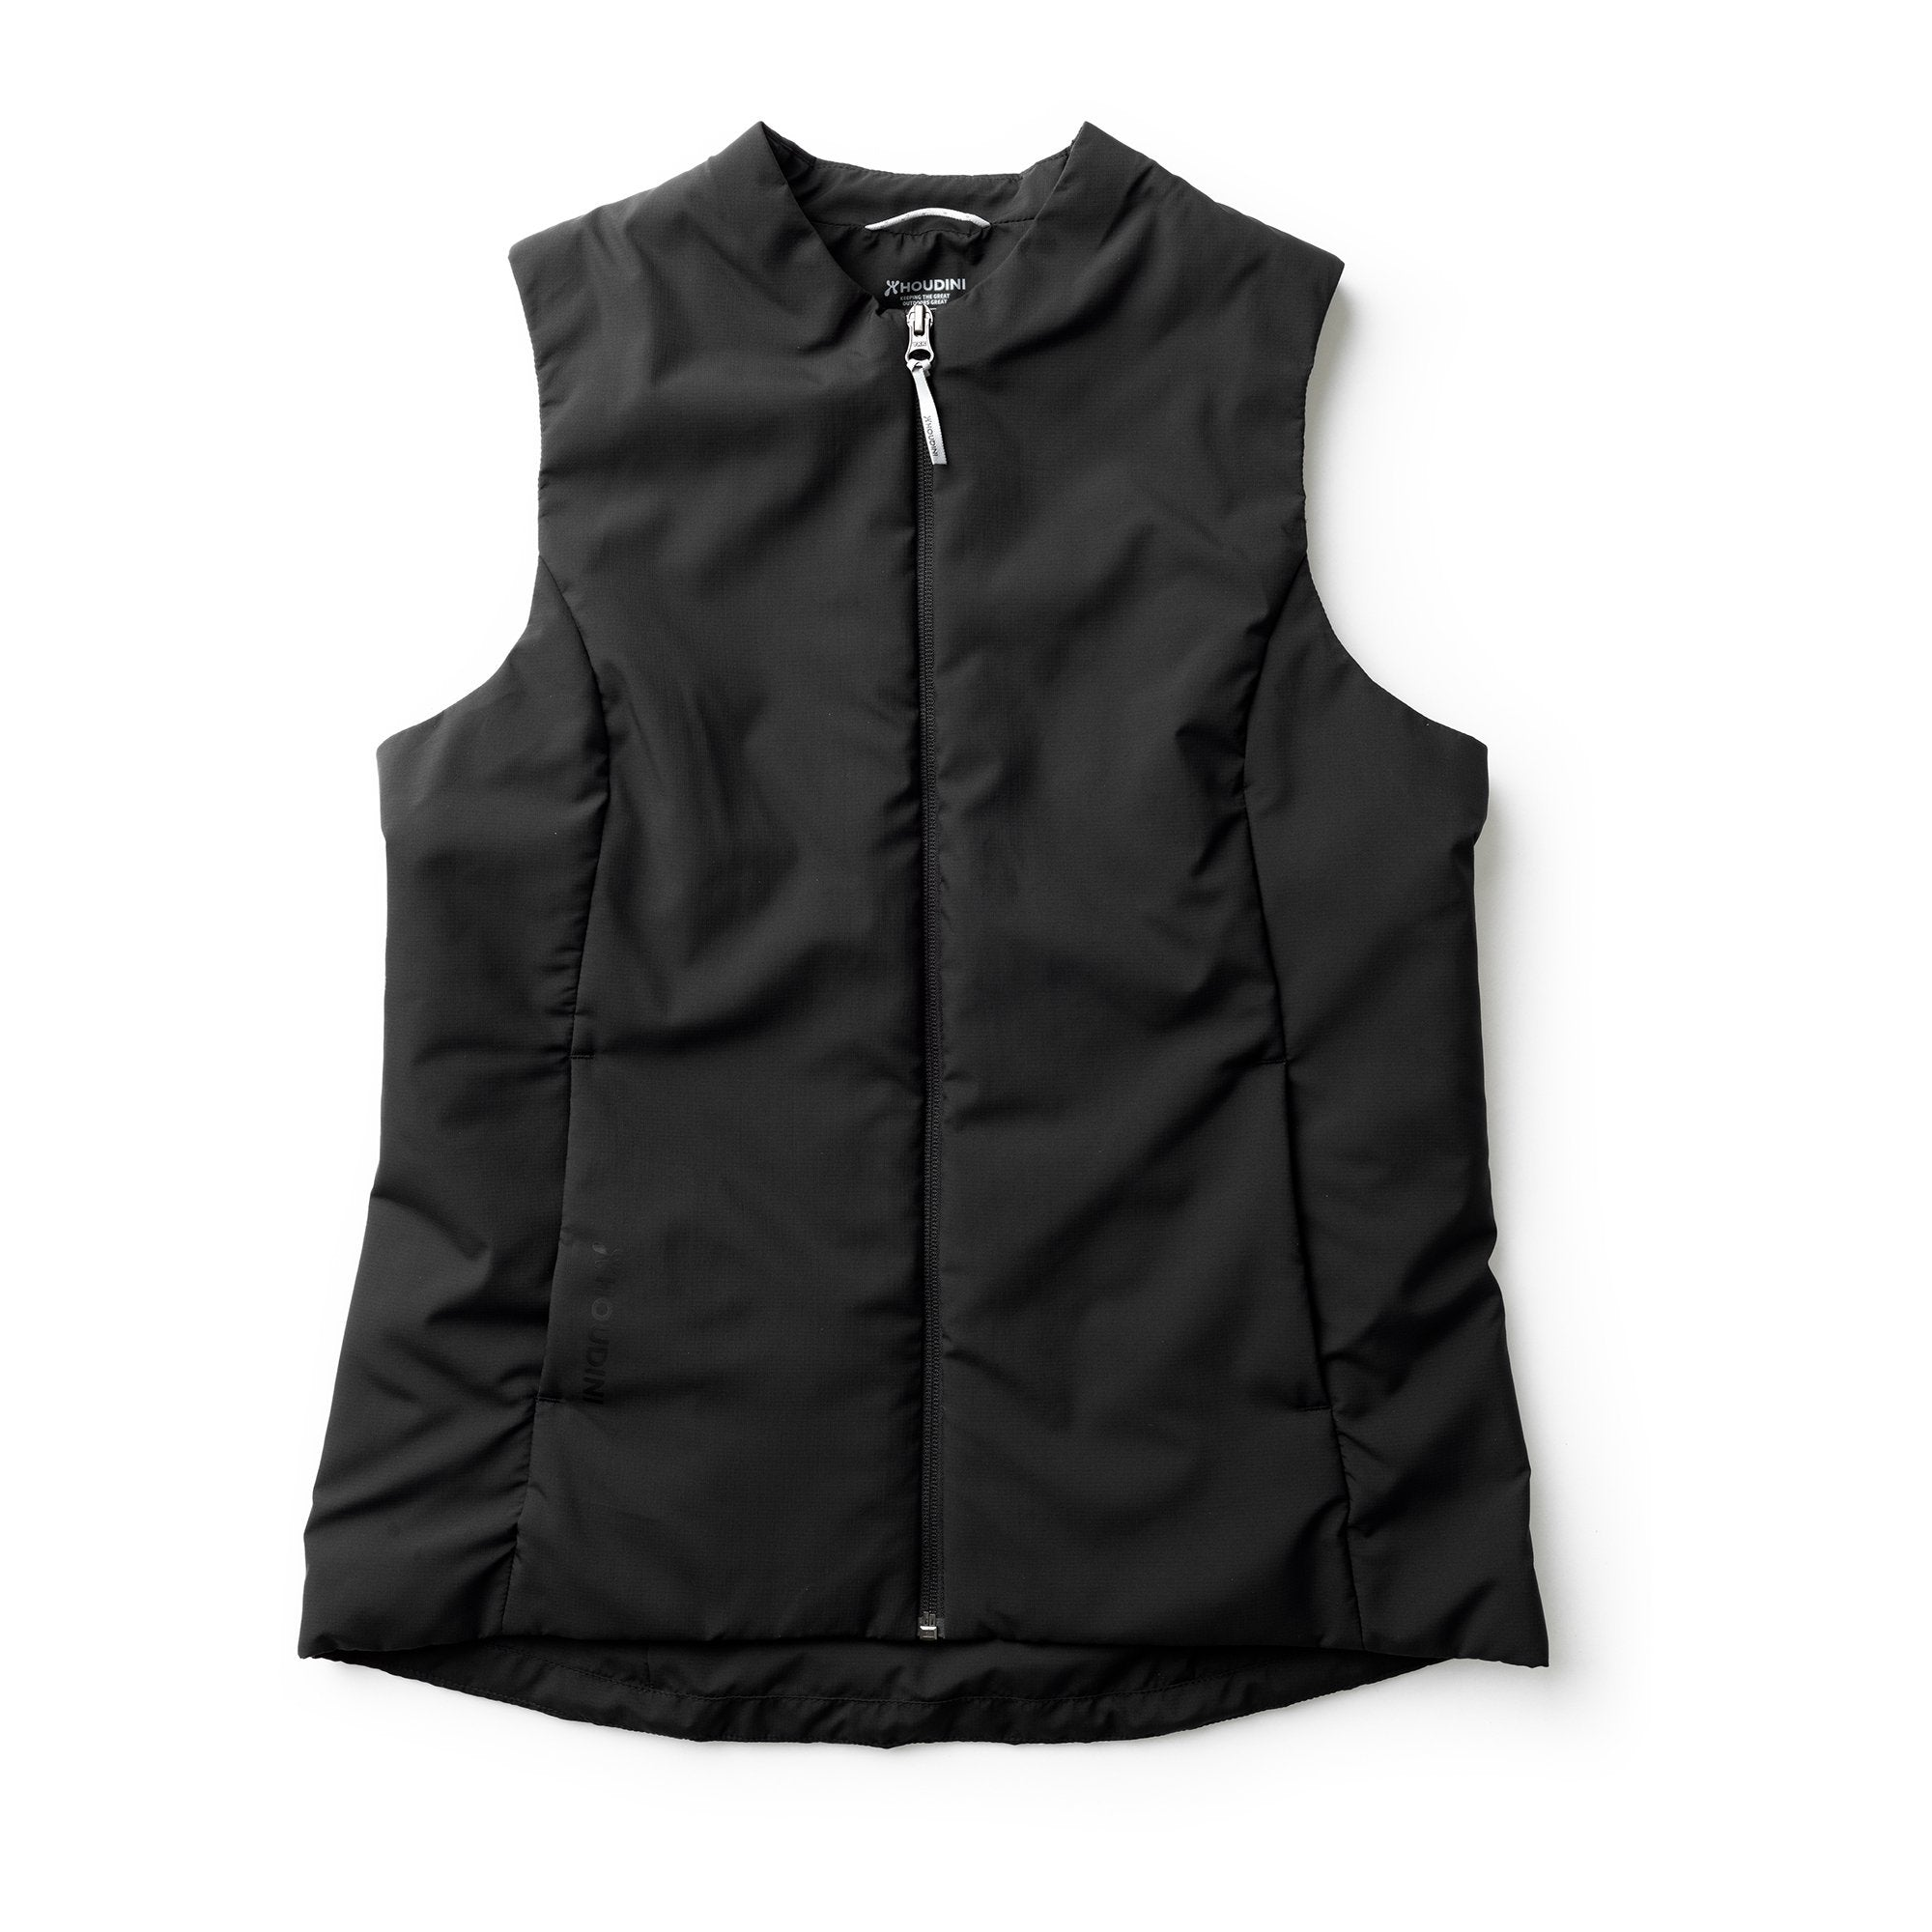 Venture Vest - True Black - Dam - Vindpinad